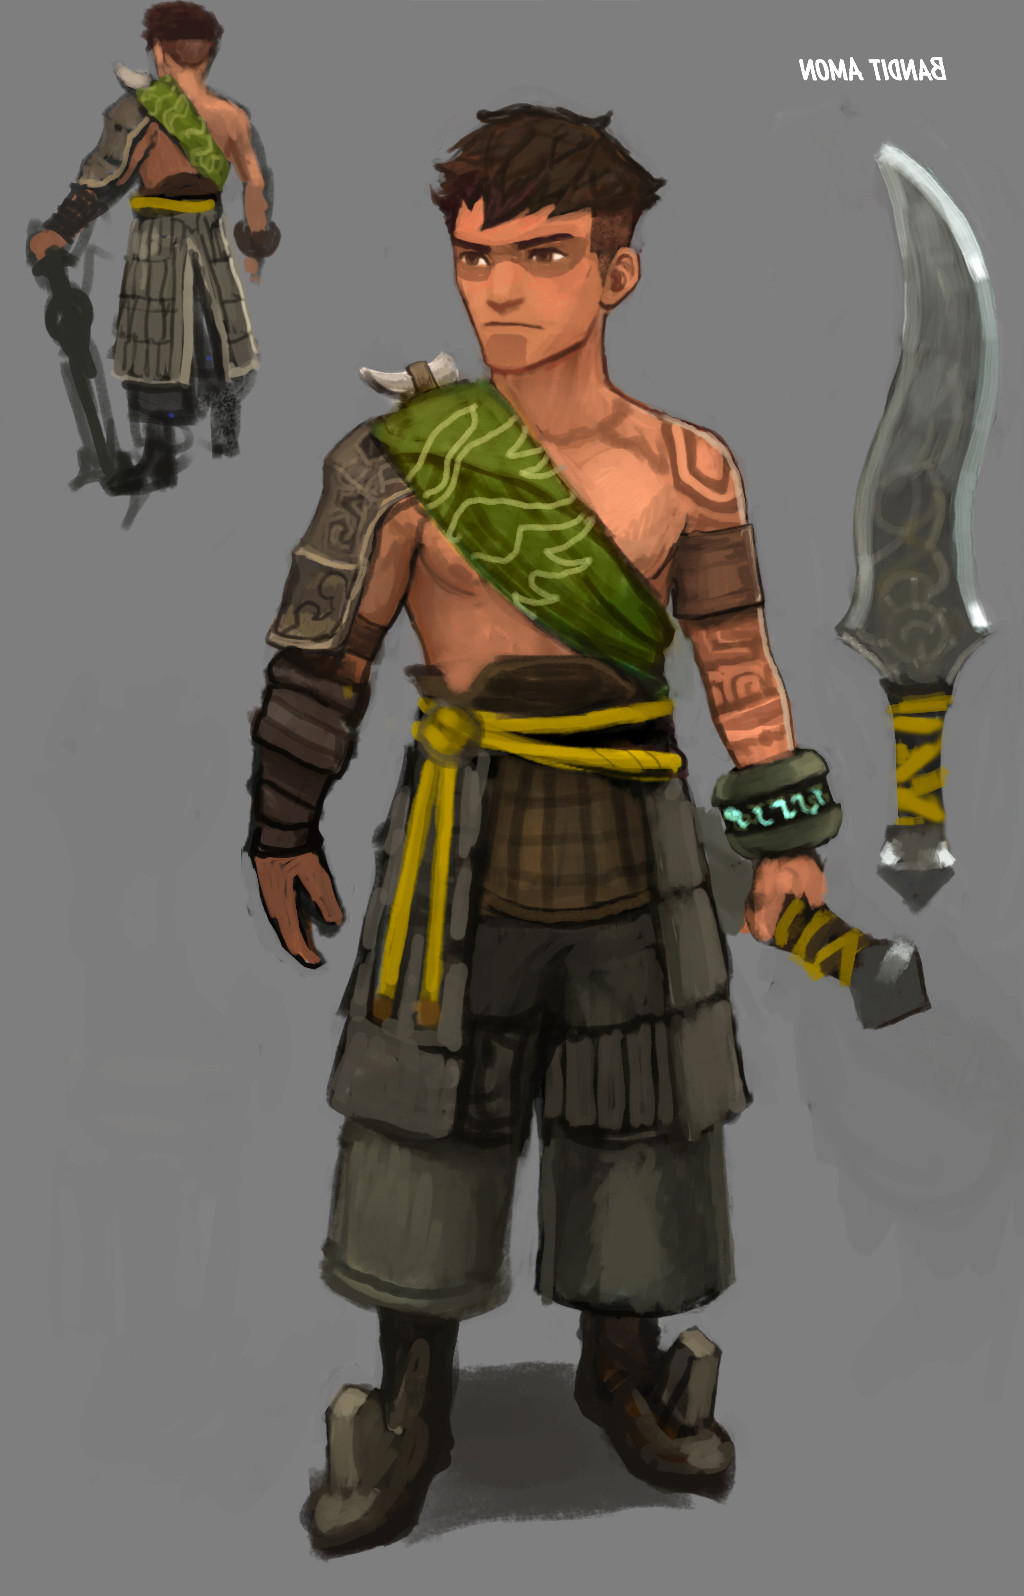 Concept for Amon's Bandit outfit.